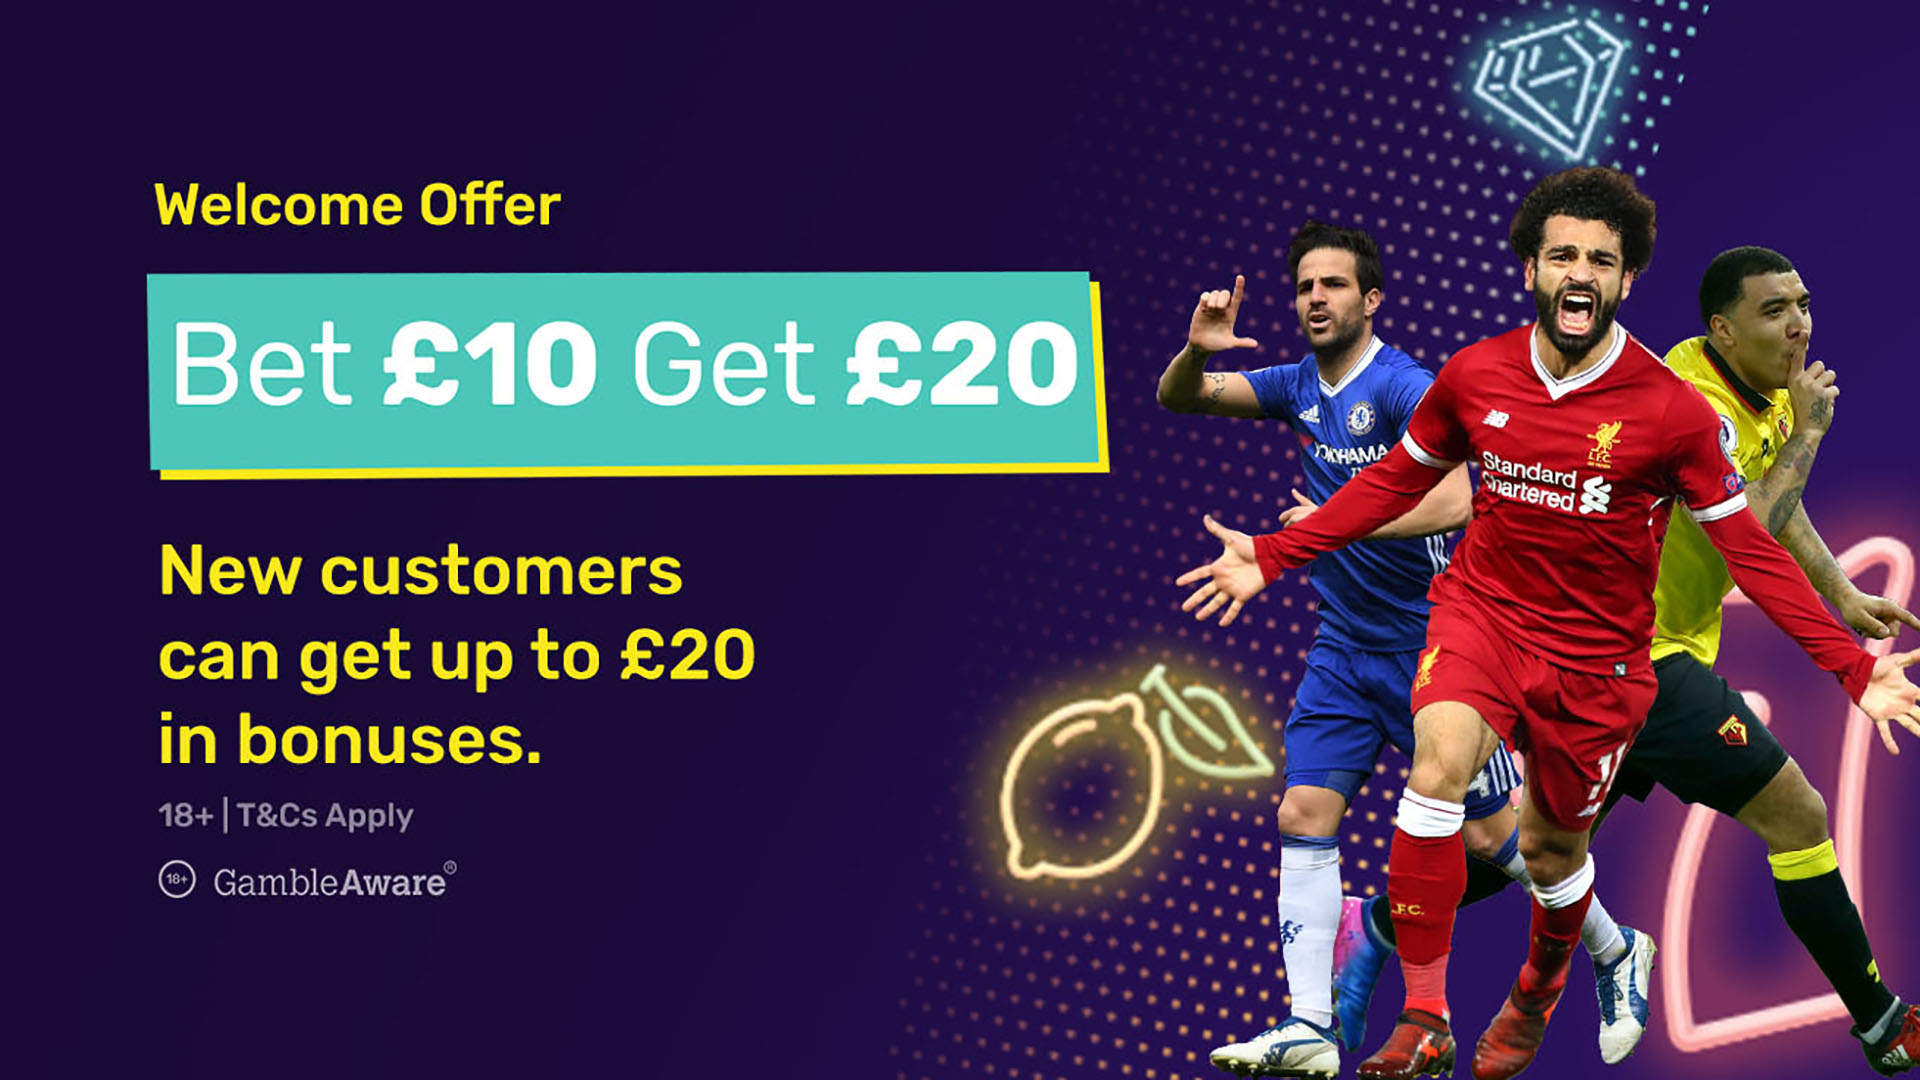 dabblebet new customer offer GFX